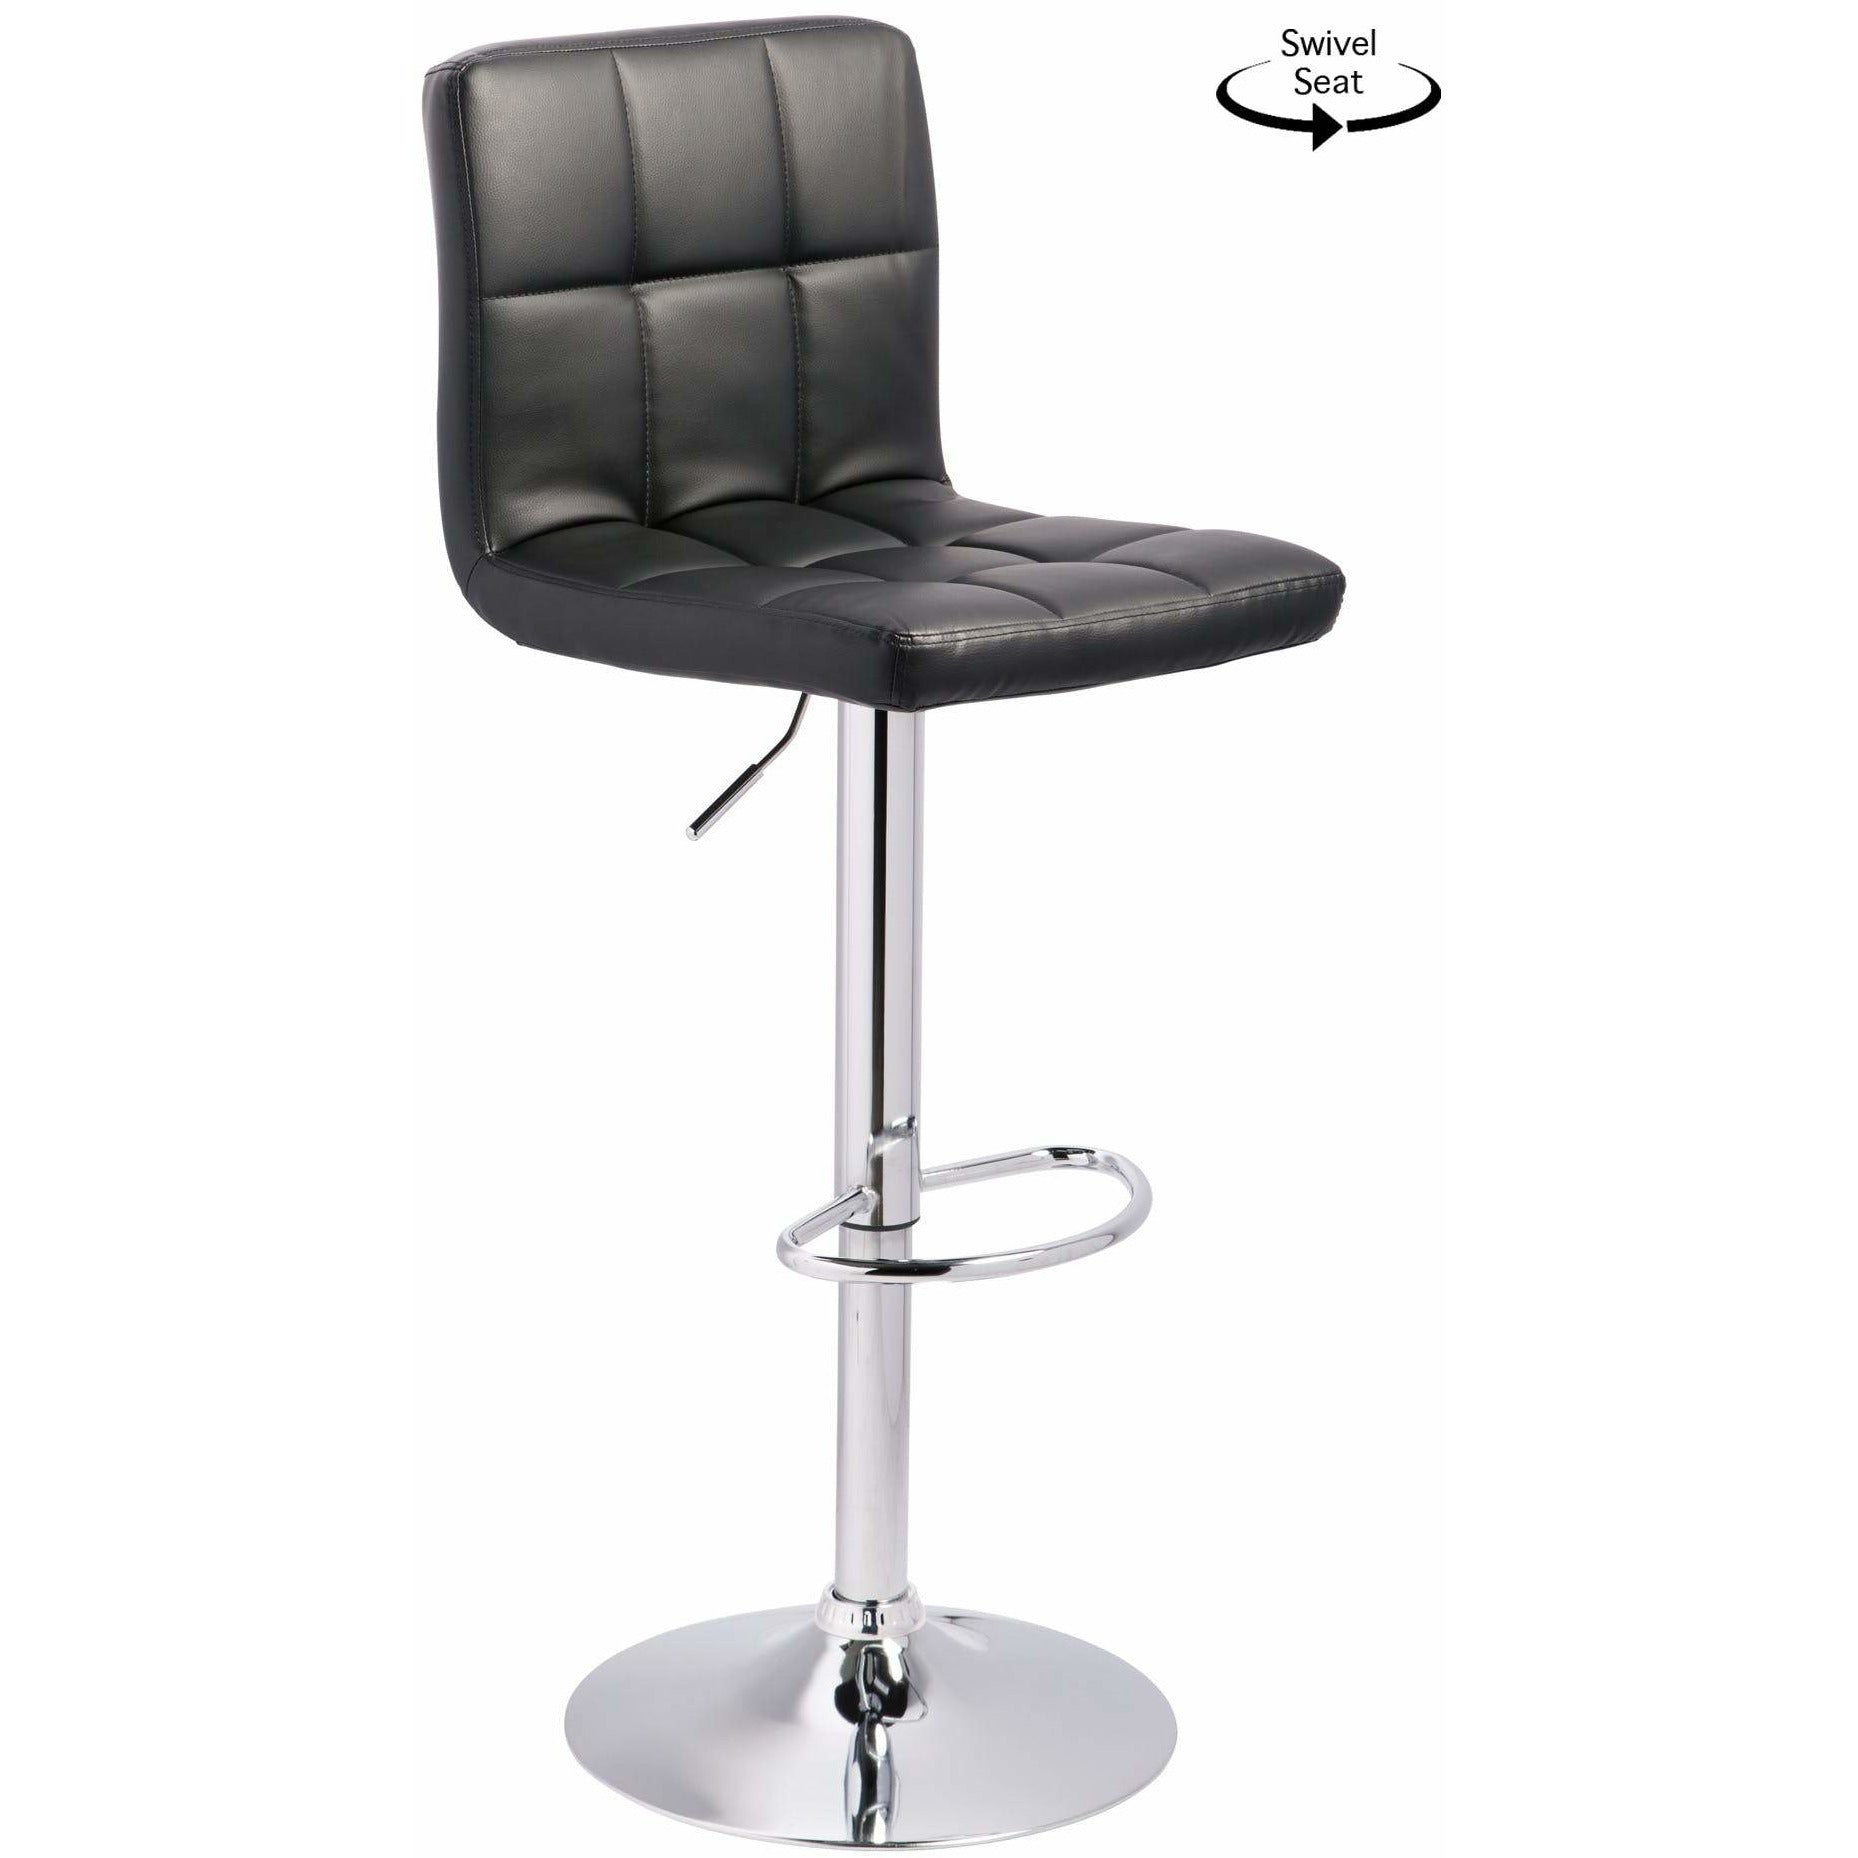 Adjustable Swivel Barstool - Quilted Black